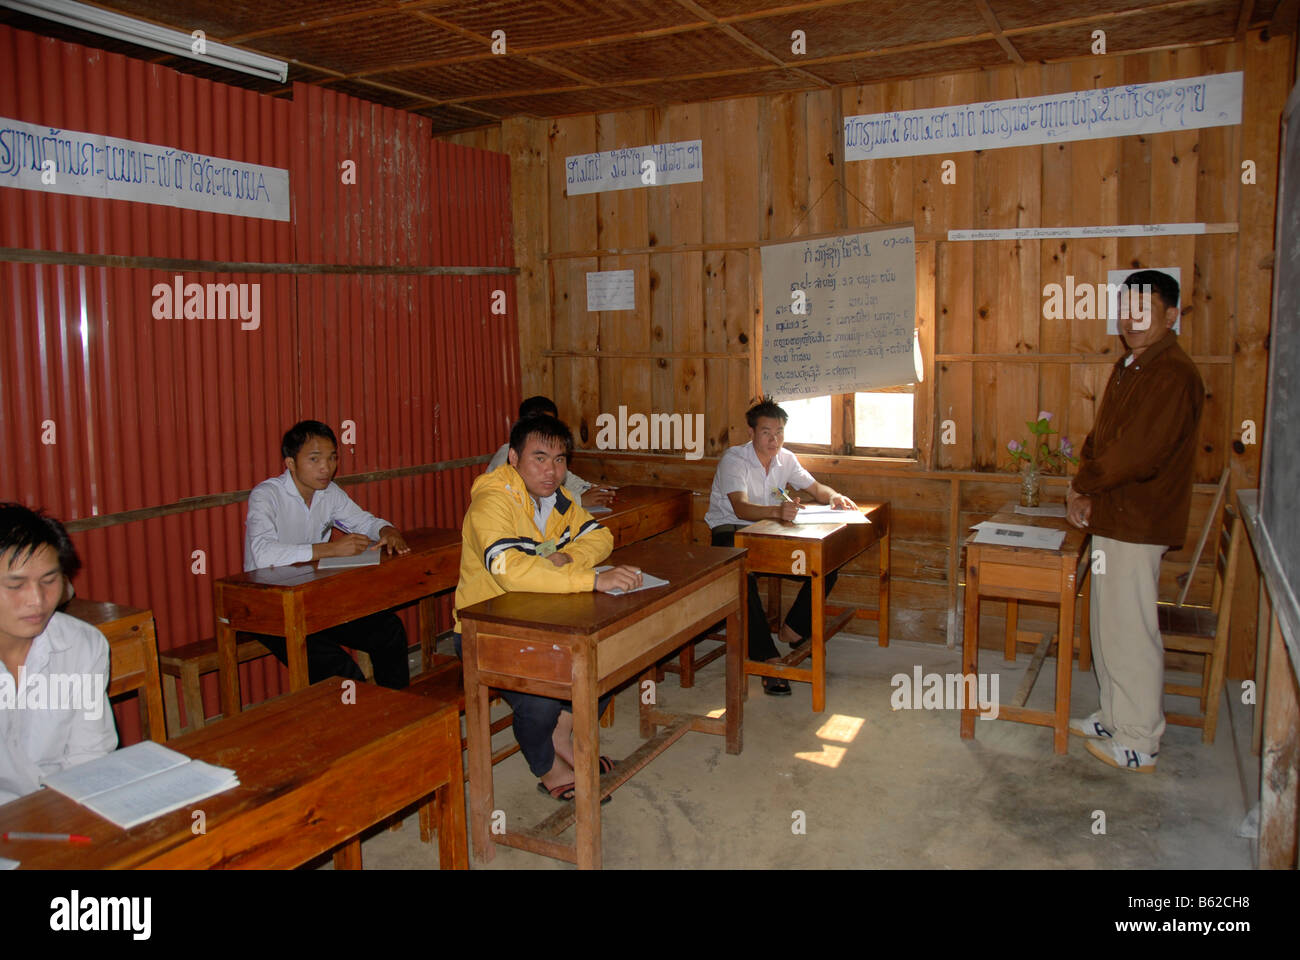 Young people learning english in a vocational school, Phonsavan, Xieng Khuang Province, Laos, Southeast Asia - Stock Image